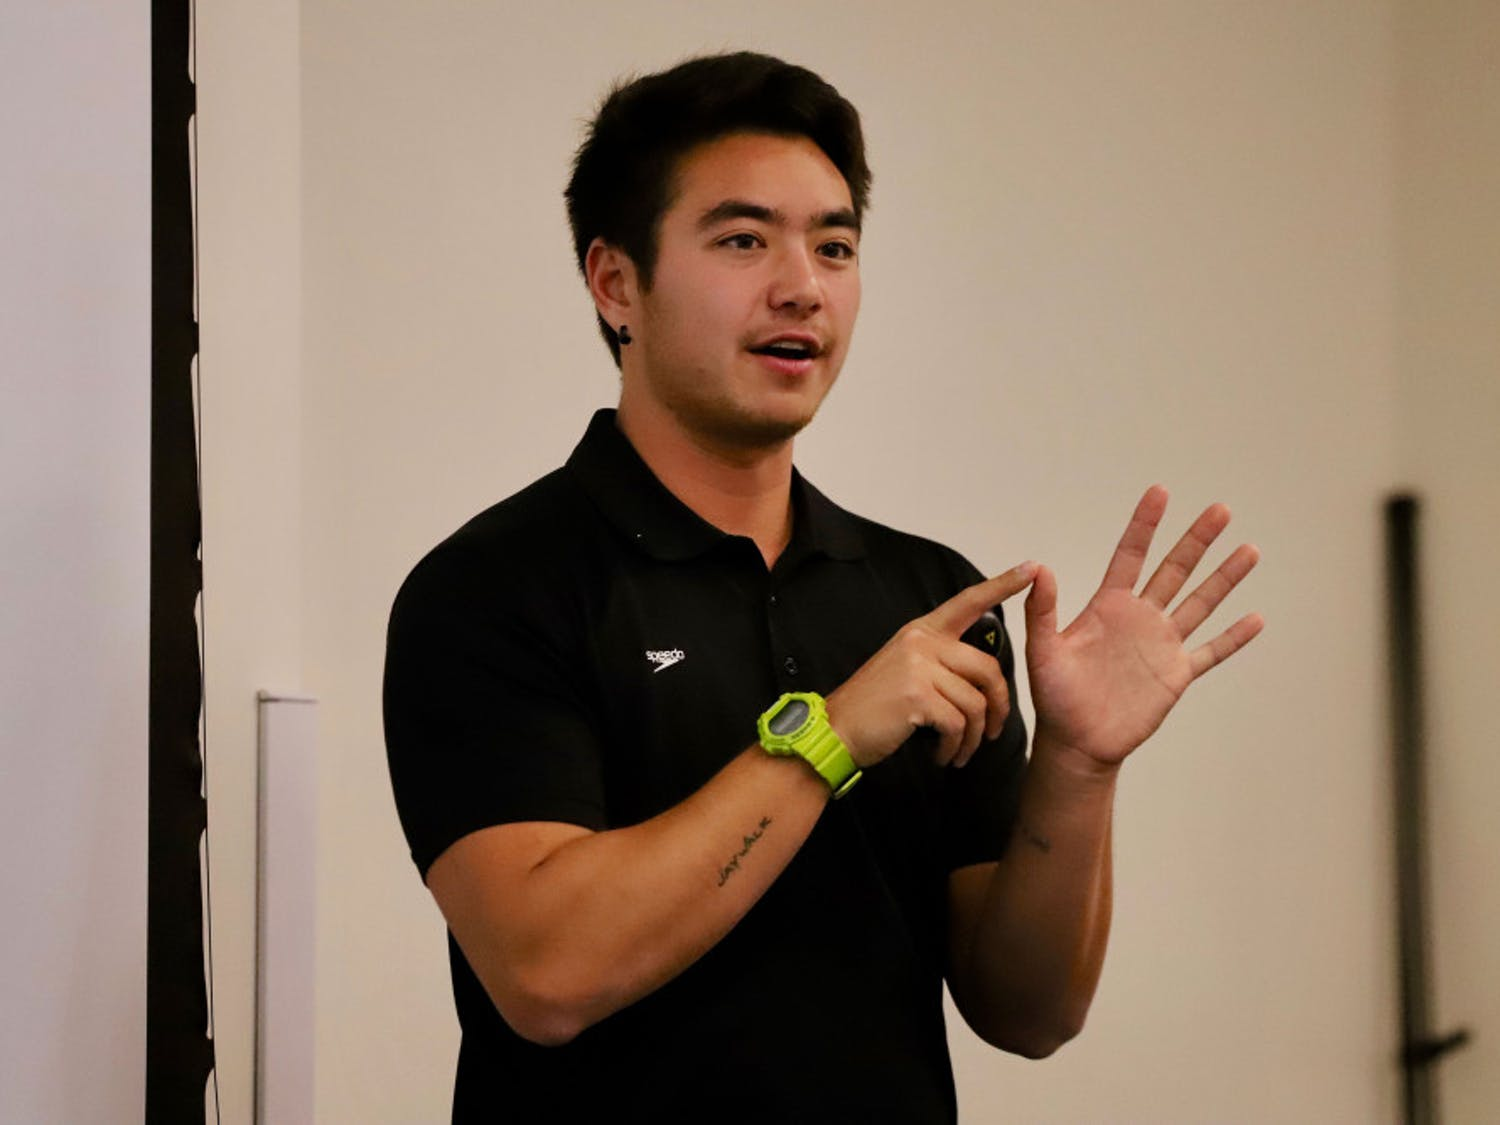 Schuyler Bailar, 23, the first Division 1 NCAA trans-athlete speaks about his life Friday to students. His speech marked the culmination of events put on by Pride Student Union celebrating National Coming Out Day.